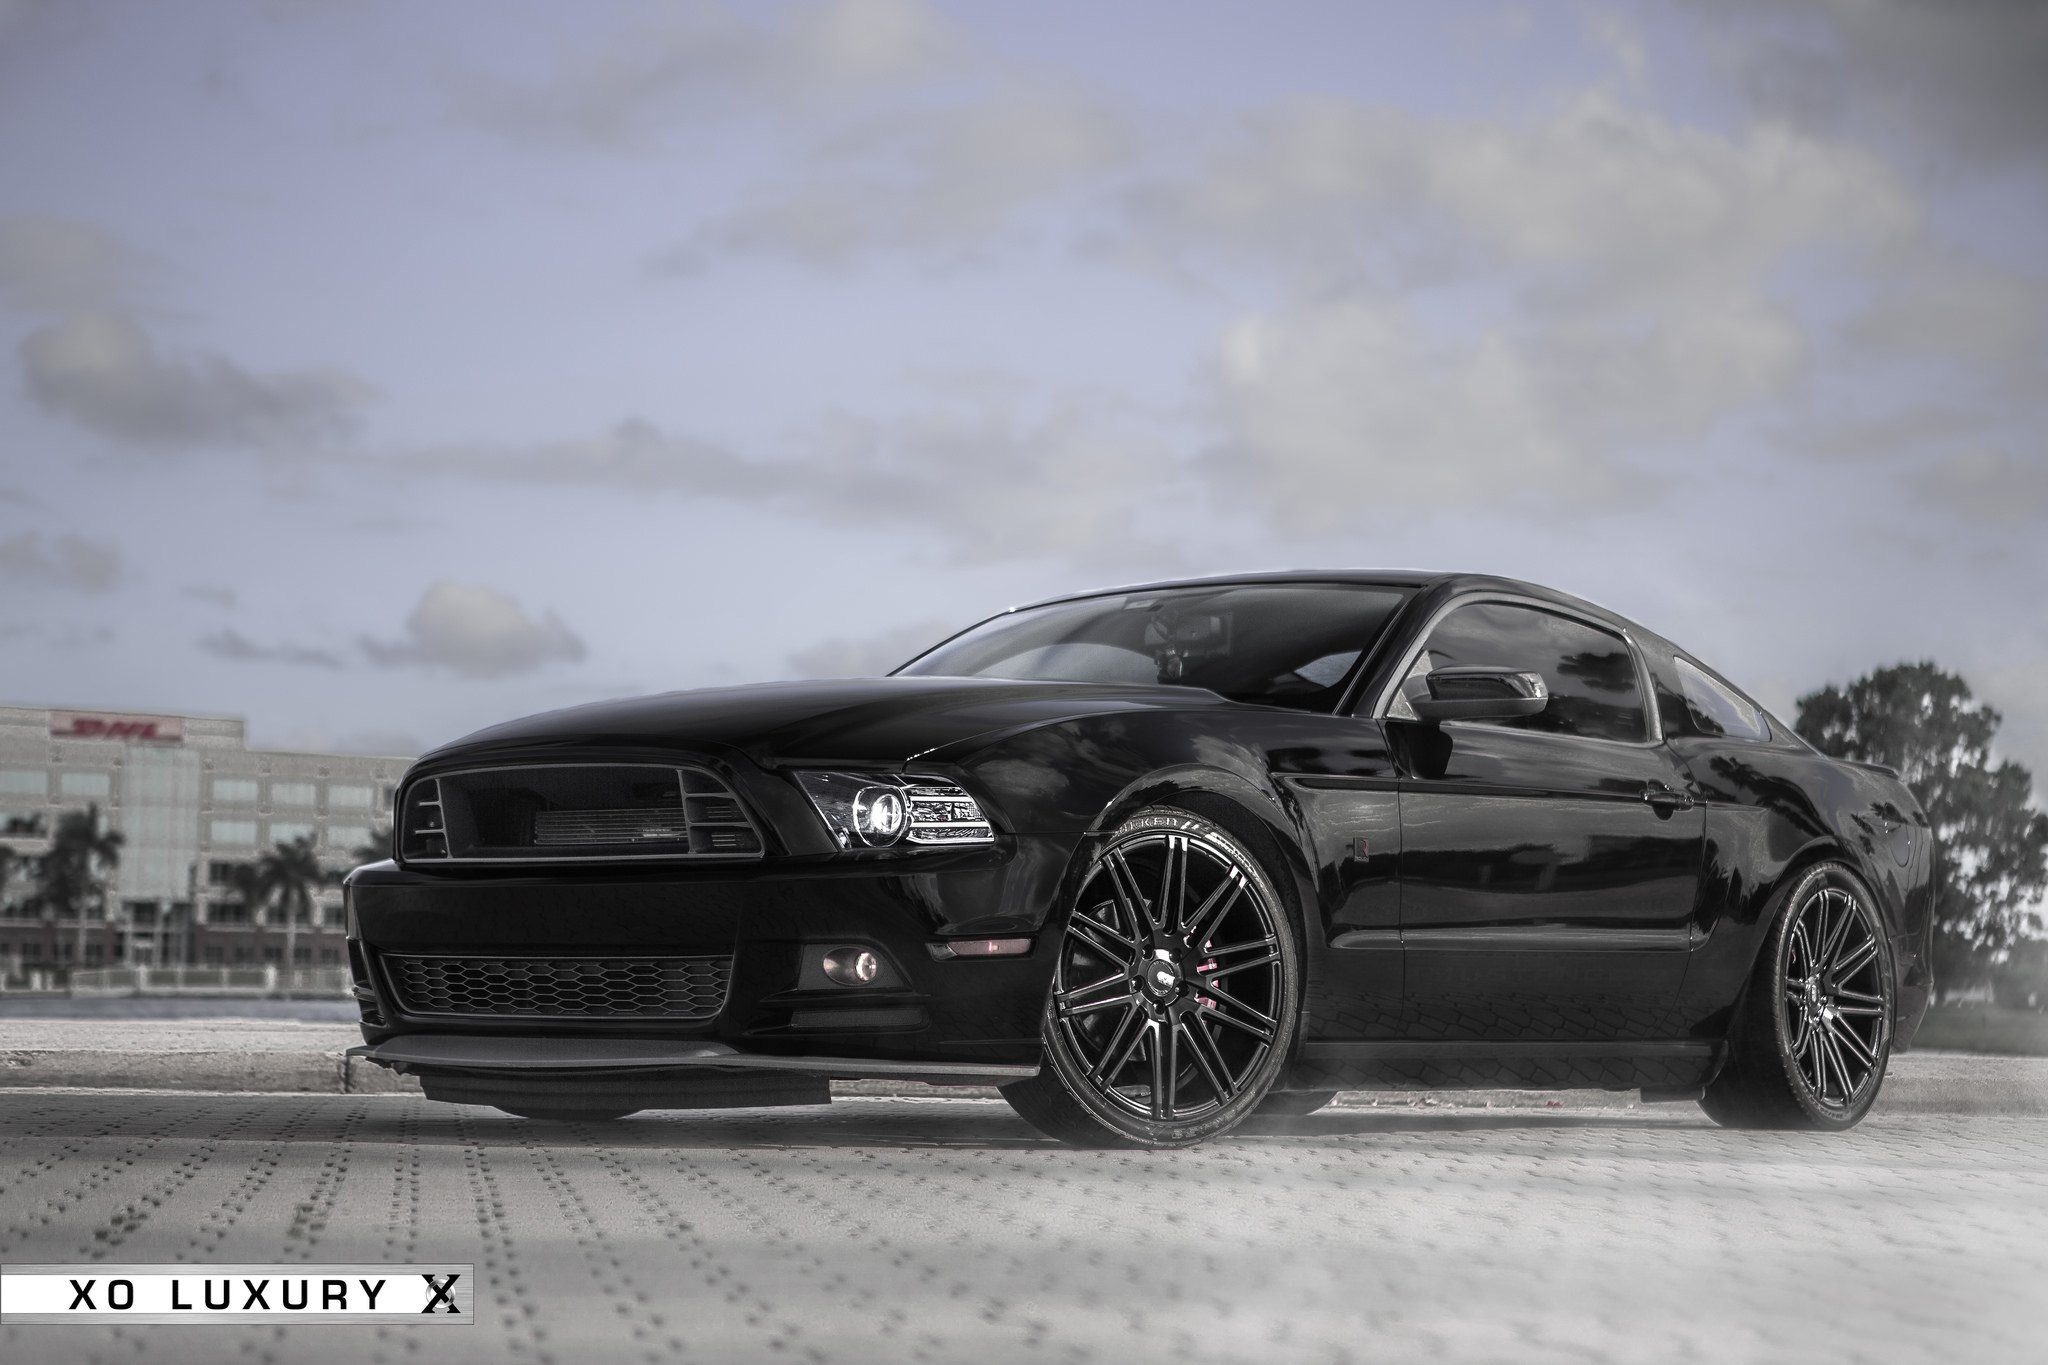 Black Mustang With Roush Ground Effects and - Photo by XO Luxury